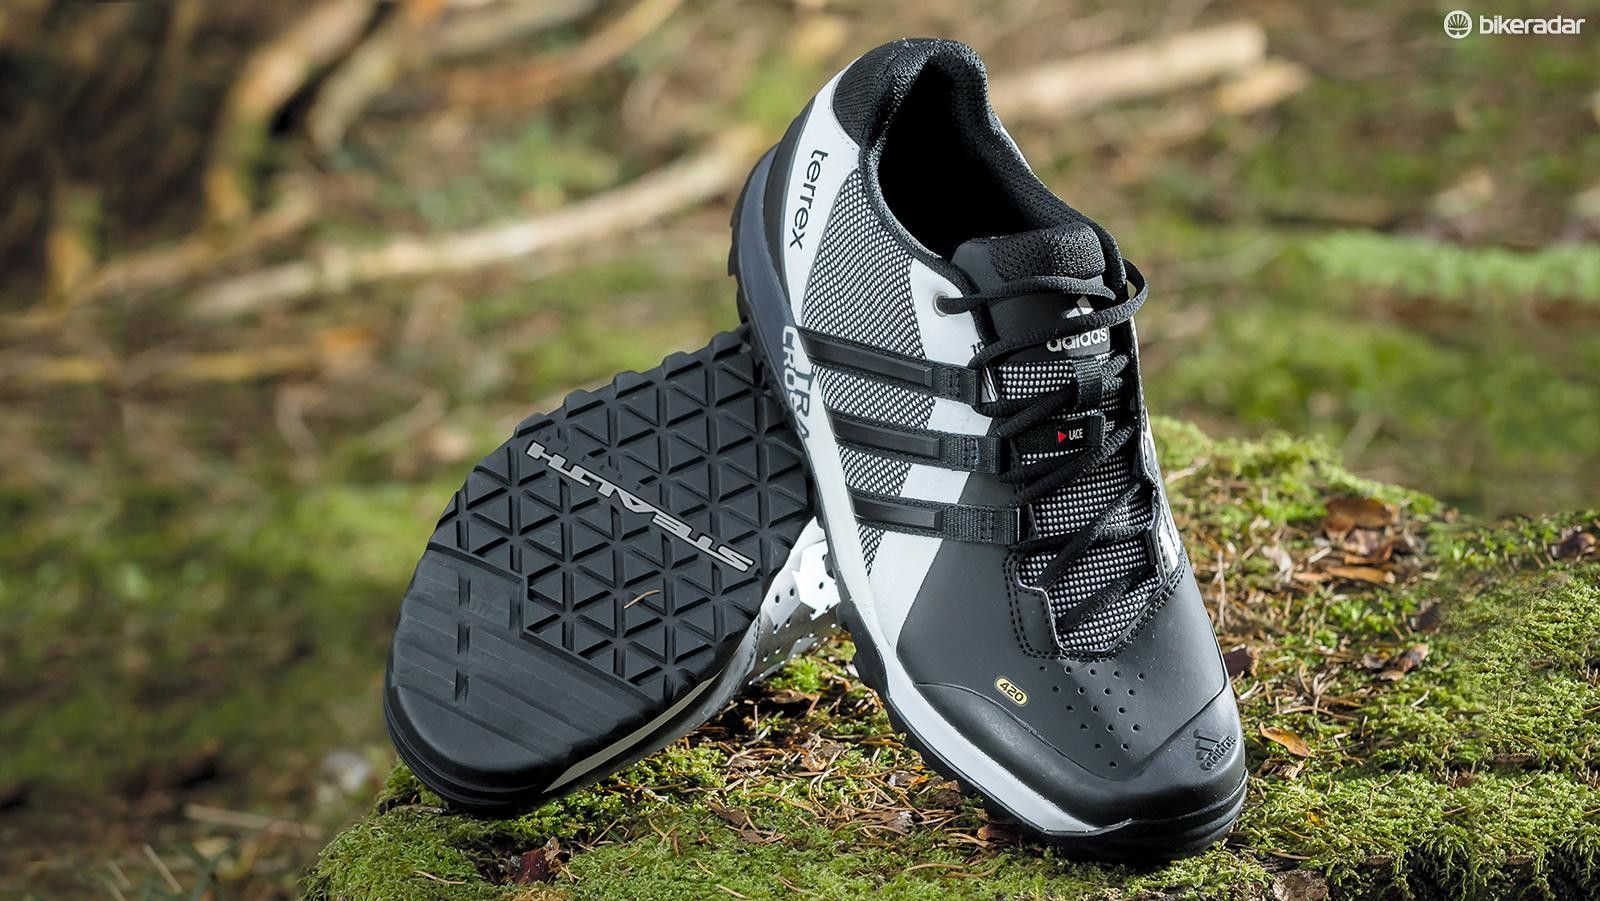 Adidas' Terrex Trail Cross MTB shoes may not be the toughest kicks out there but are a pleasure to wear